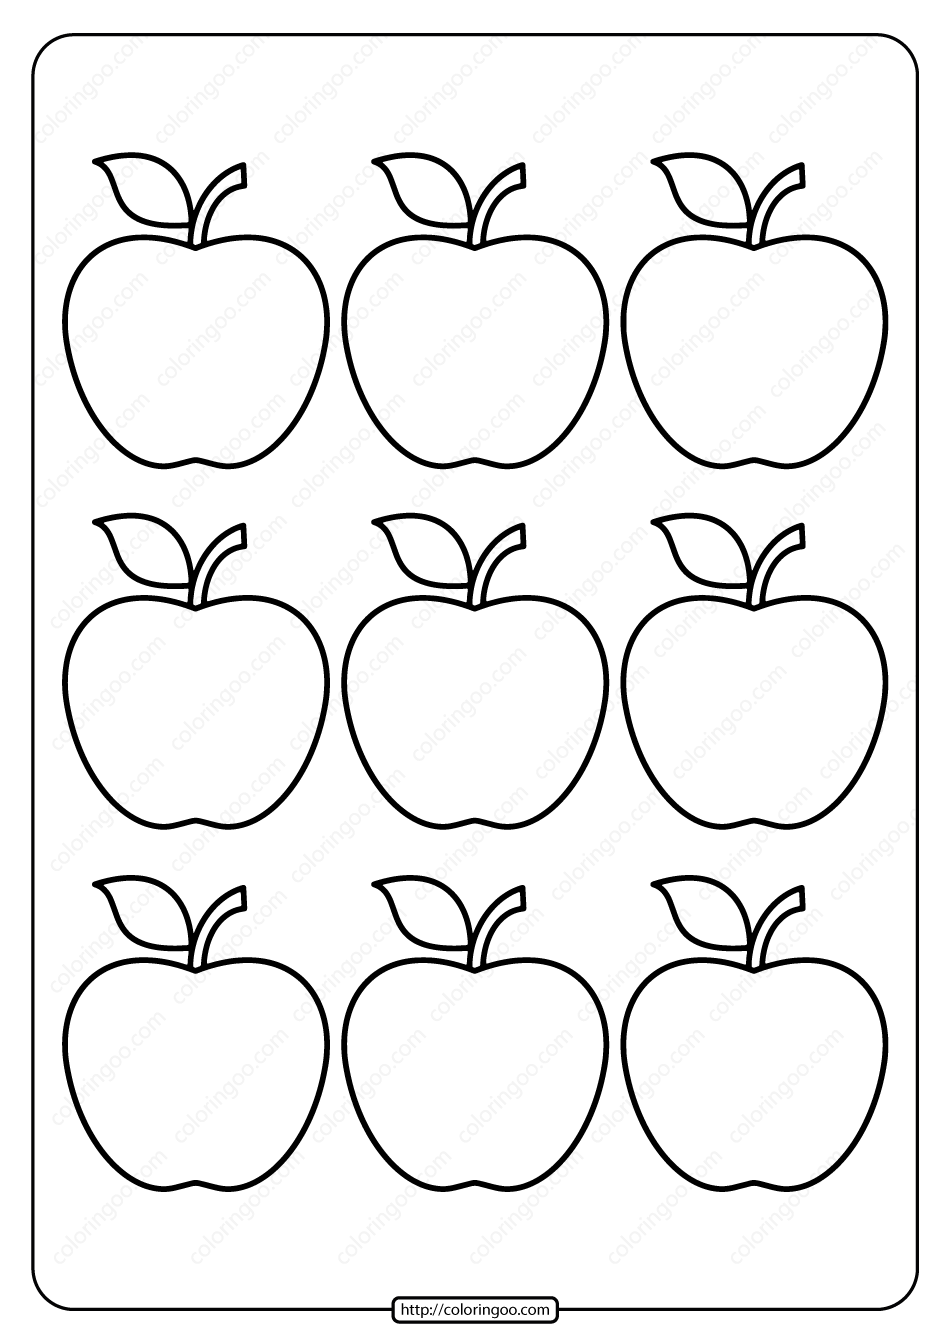 coloring picture of an apple printable simple apple outline 9 coloring page an picture of coloring apple